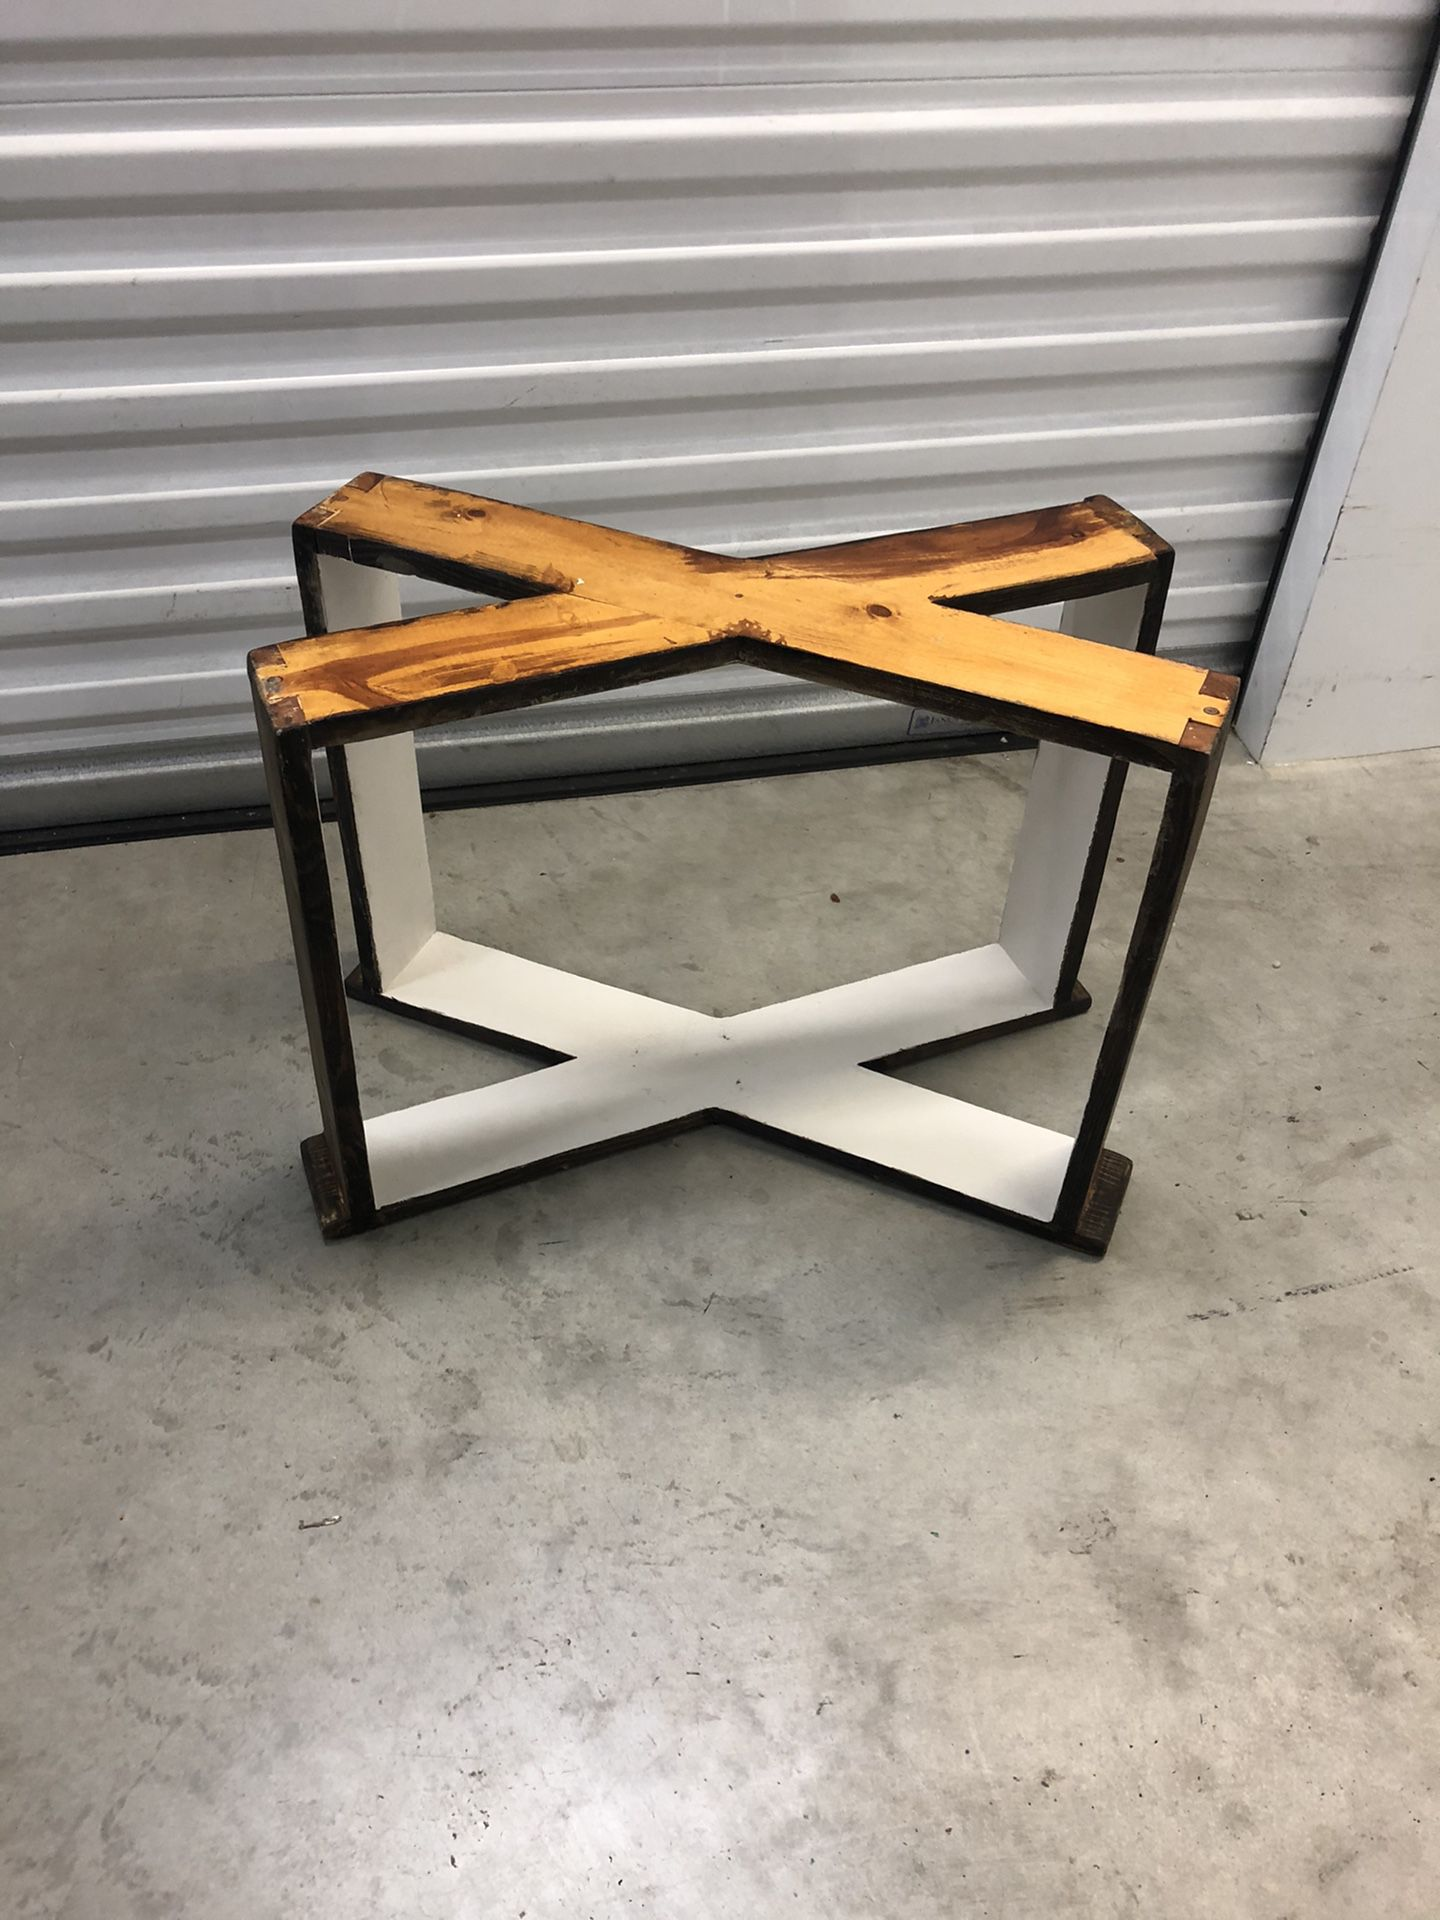 RUSTIC WOODEN TABLE BADE FOR GLASS TOP